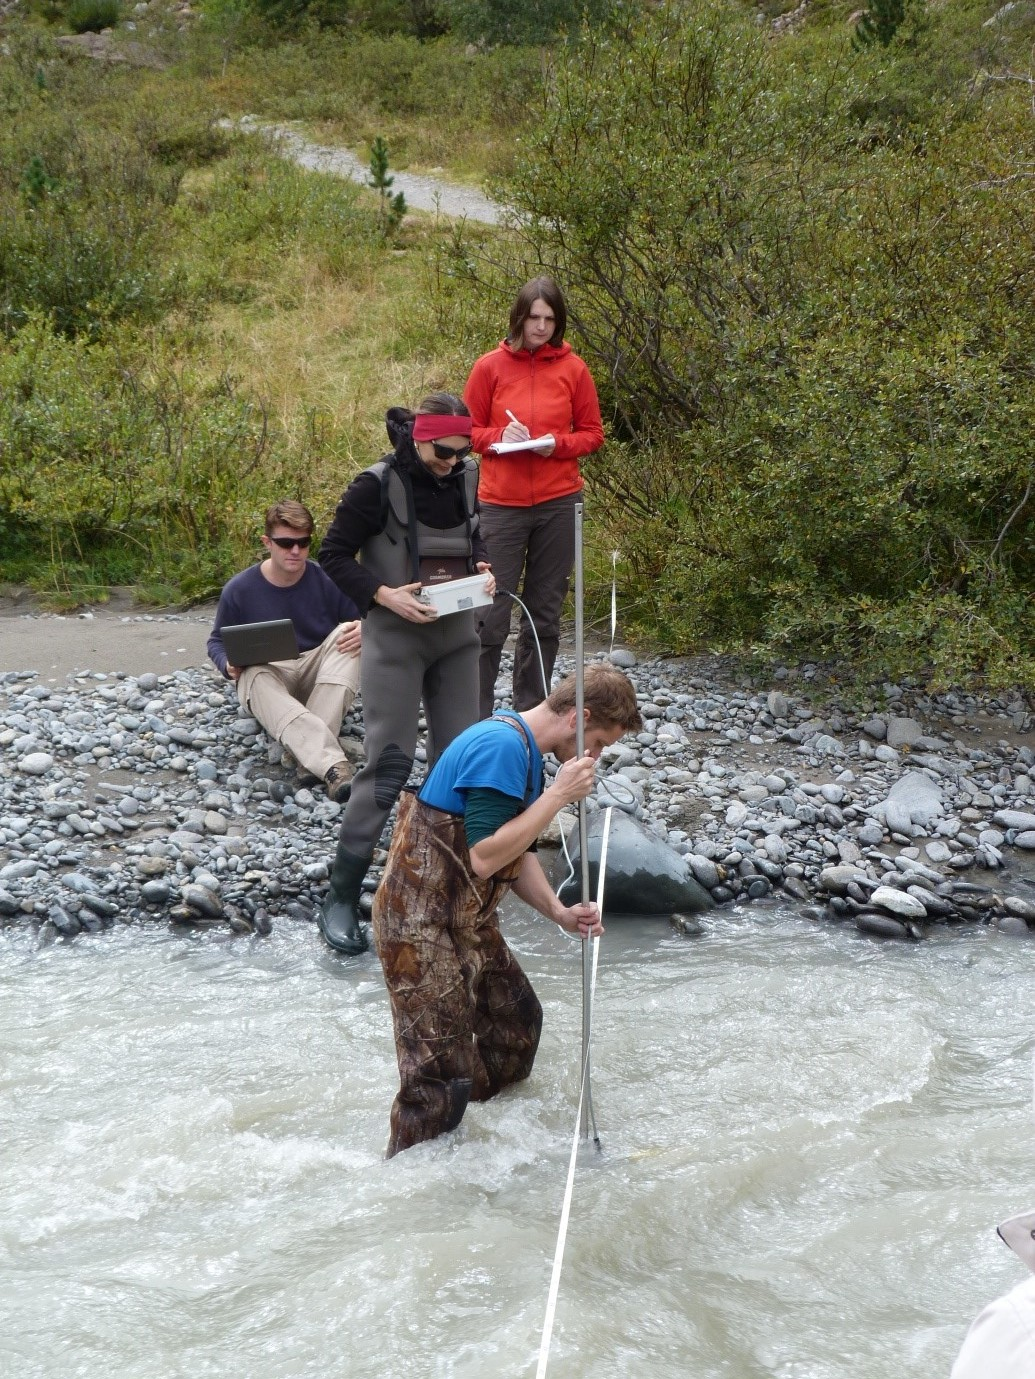 Measuring turbidity in the water column of the Riffler Creek, a tributary of the River Fagge (Image credit: Ciara Fleming).